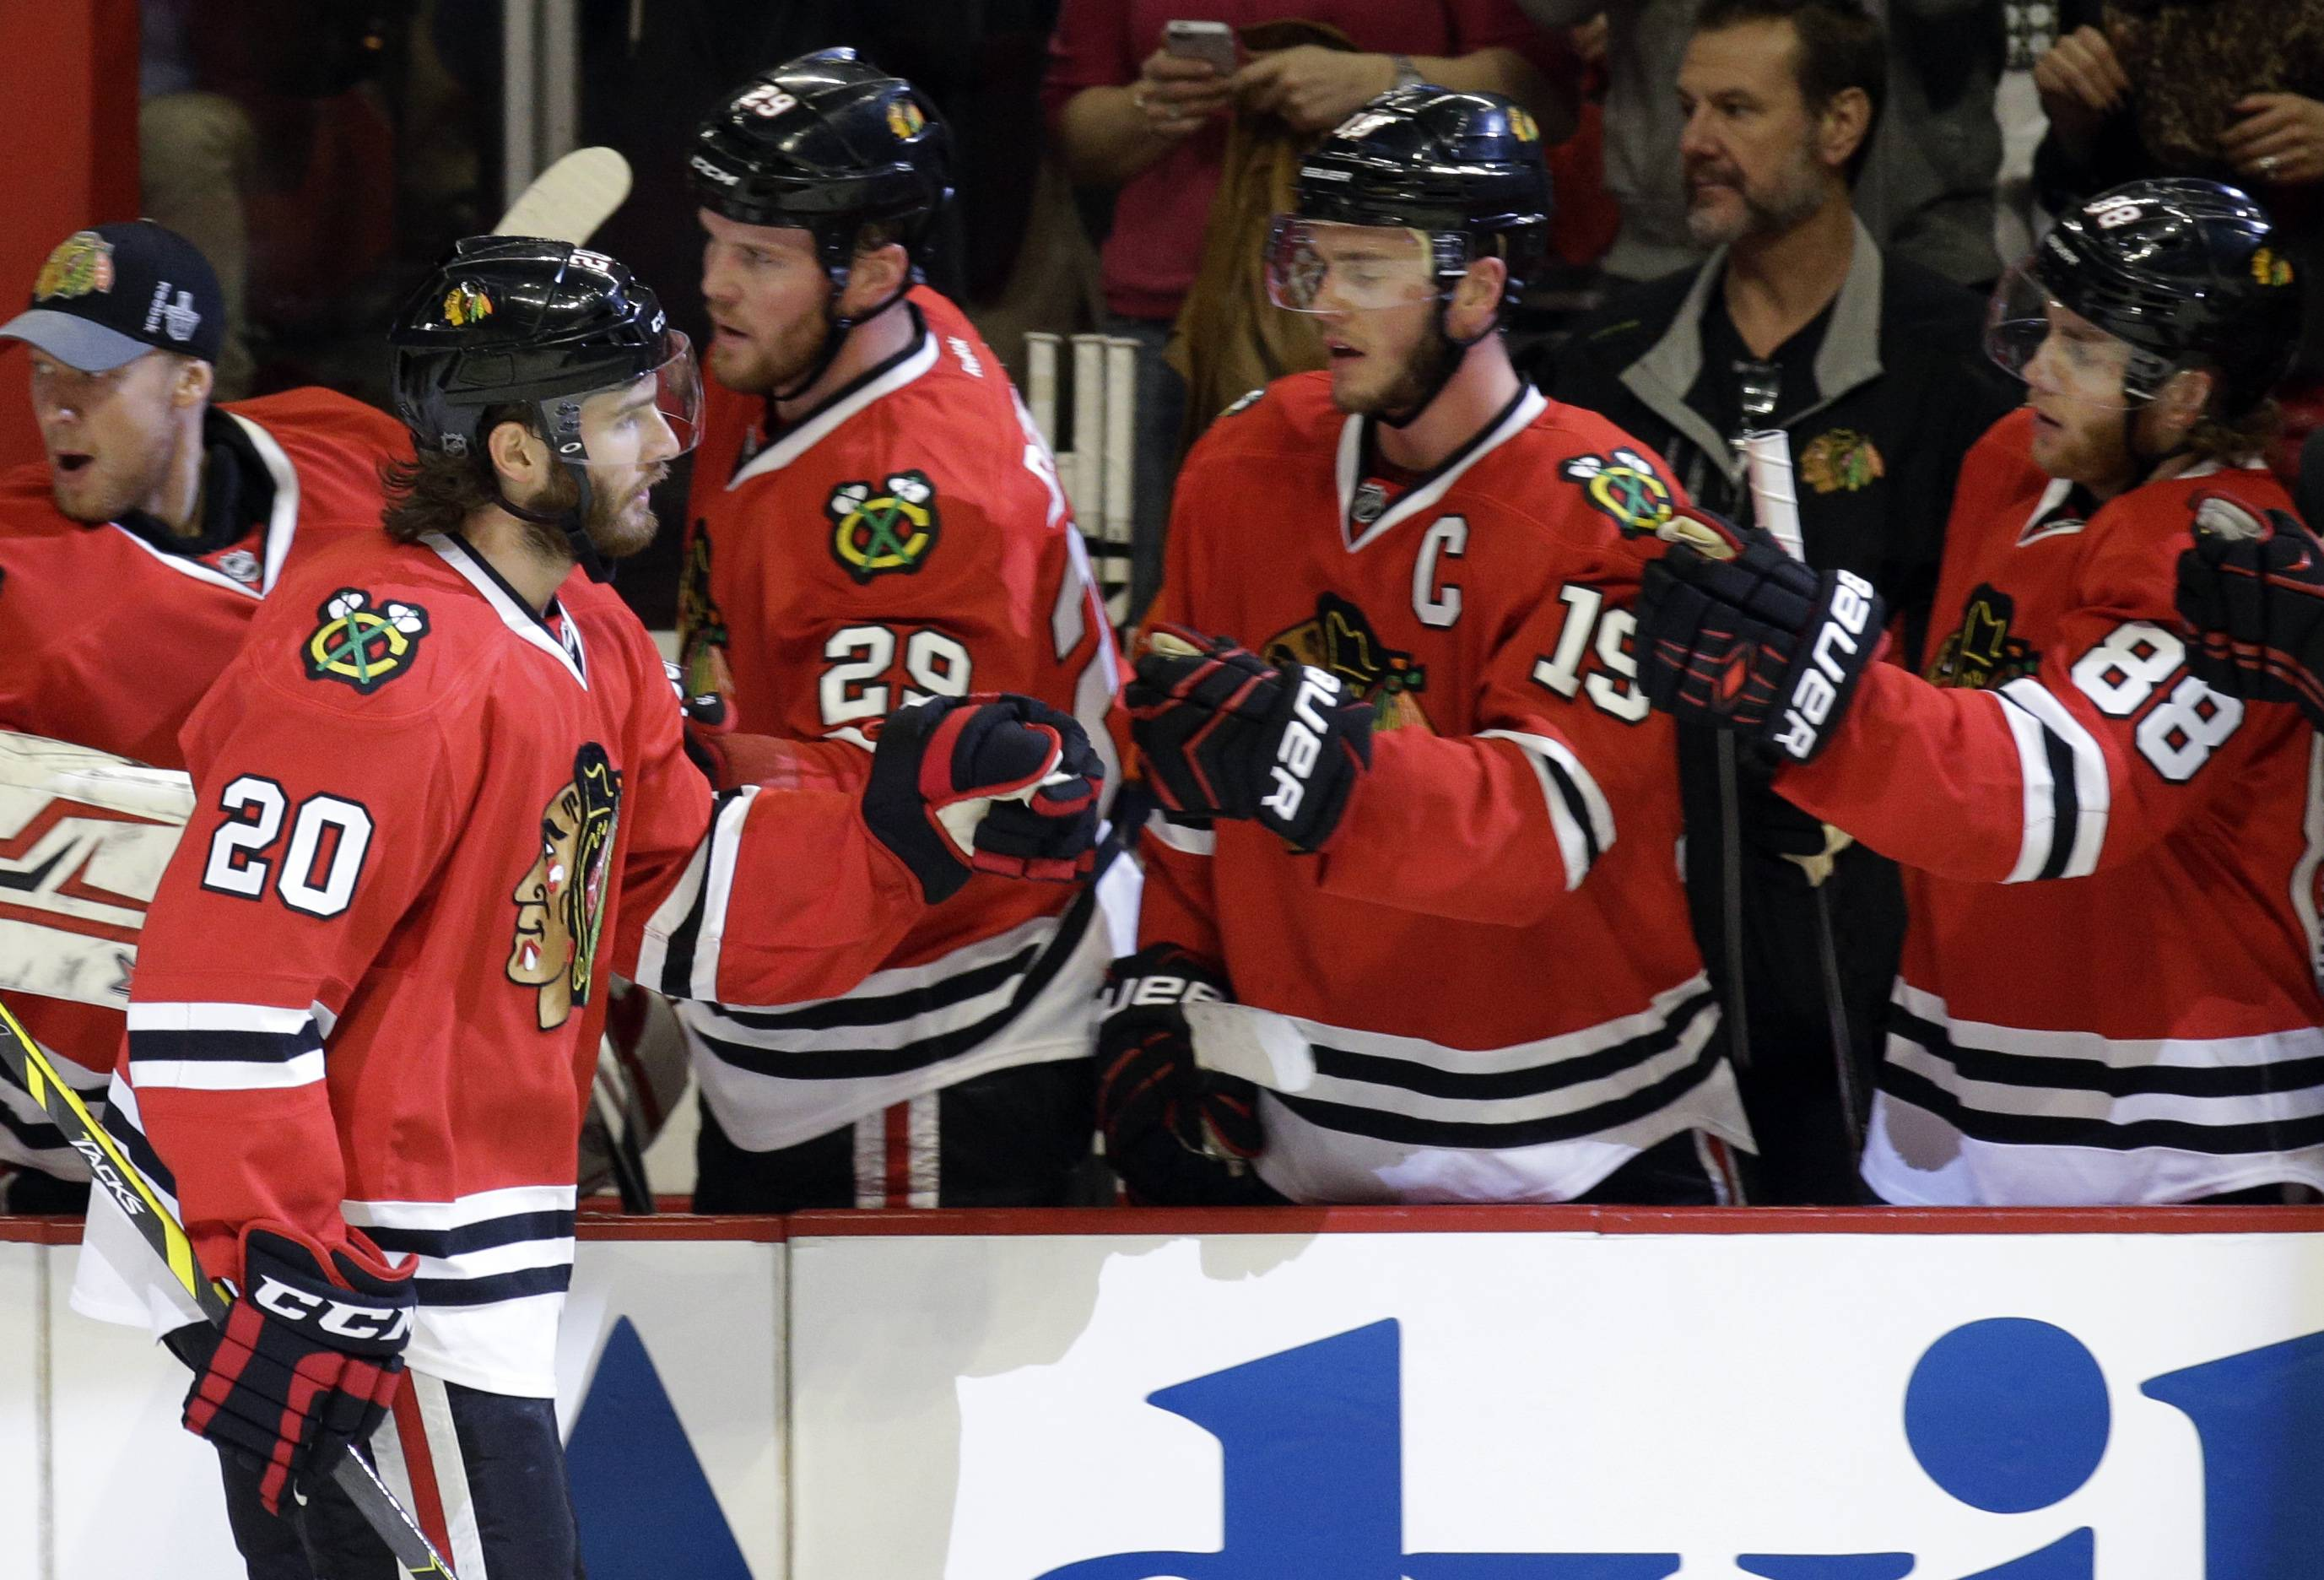 Chicago Blackhawks' Brandon Saad (20) celebrates with teammates after scoring a goal against the Los Angeles Kings during the first period.